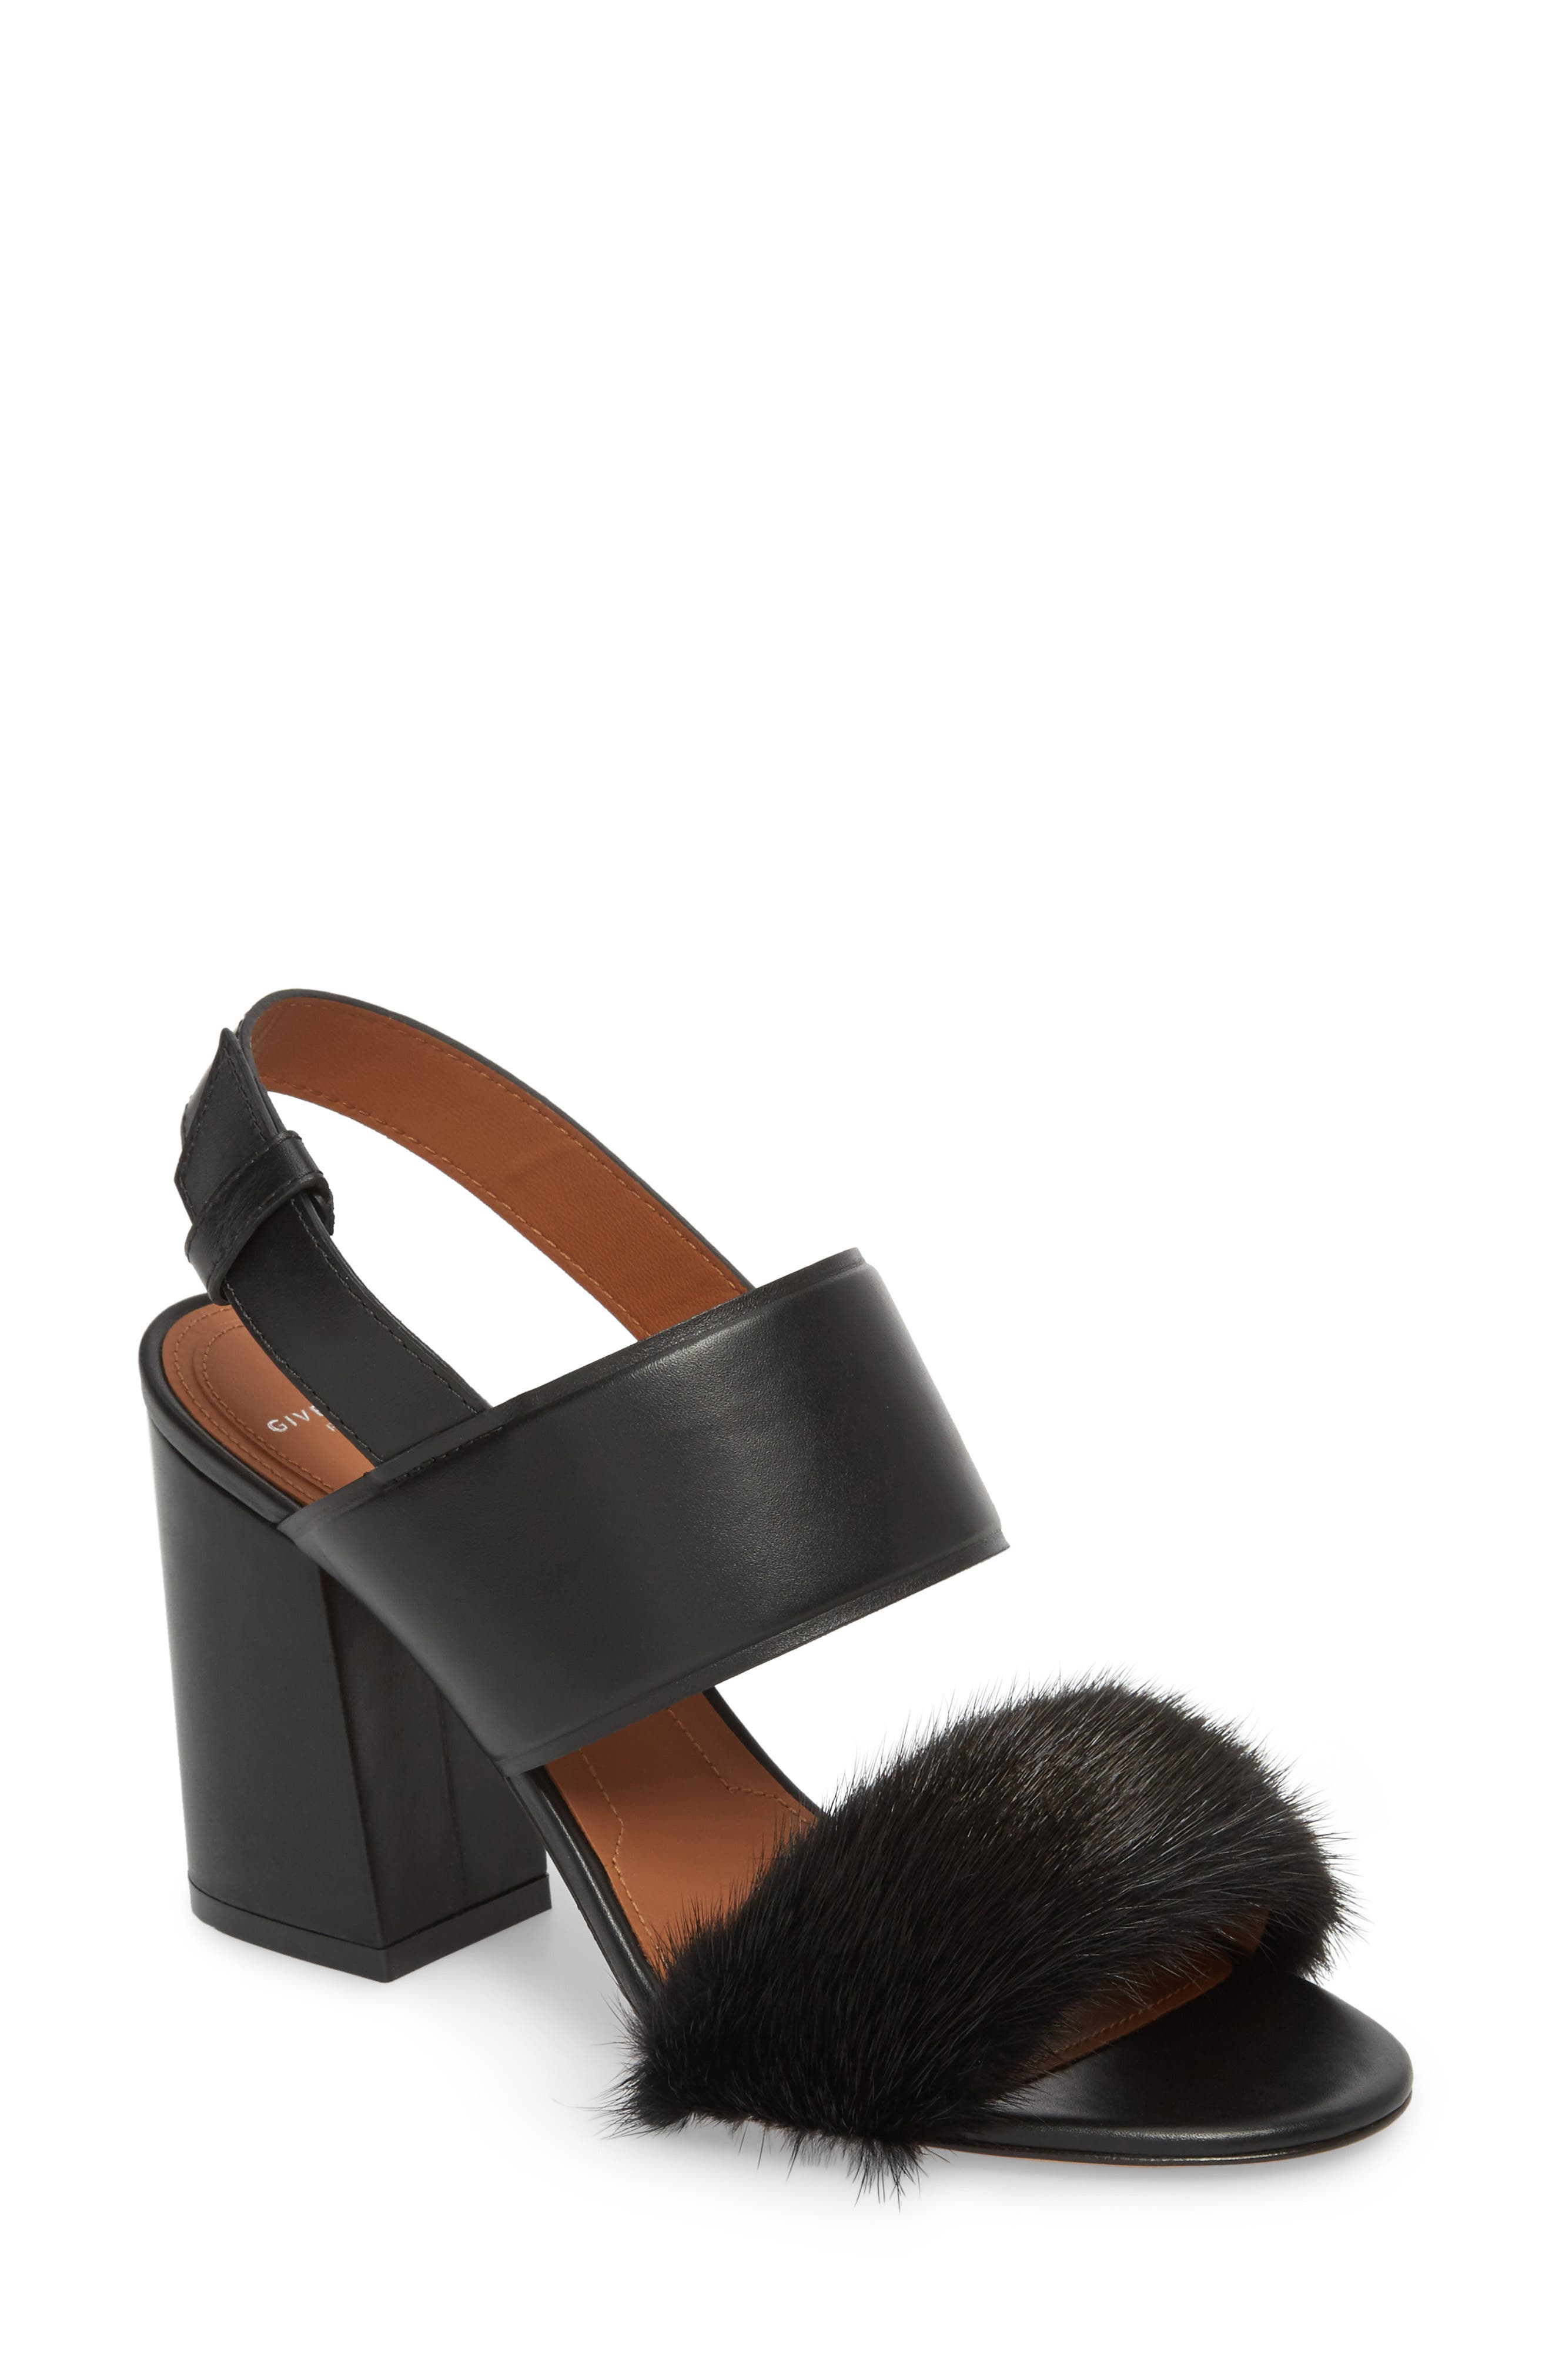 Alternate Image 1 Selected - Givenchy Genuine Mink Flared Heel Sandal (Women)